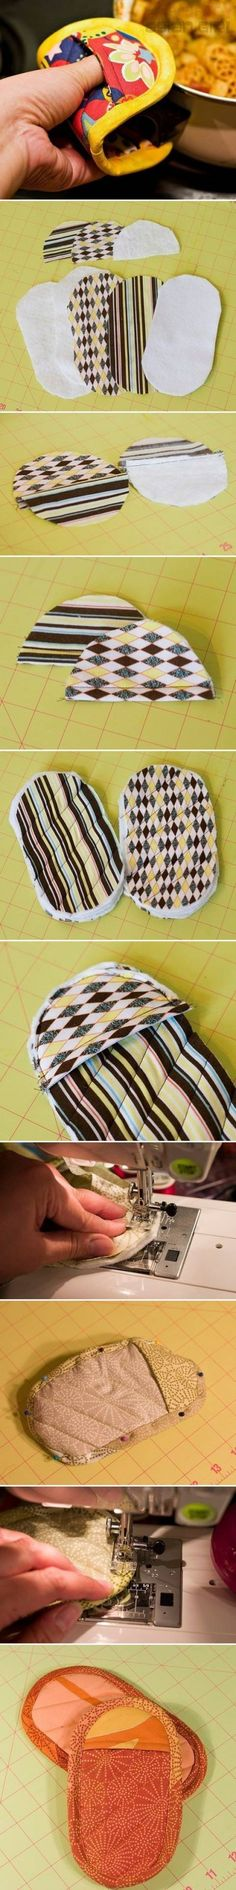 How to make Nice Pot Holder step by step DIY instructions- small enough to actually hold onto the pan without poking in the pie...